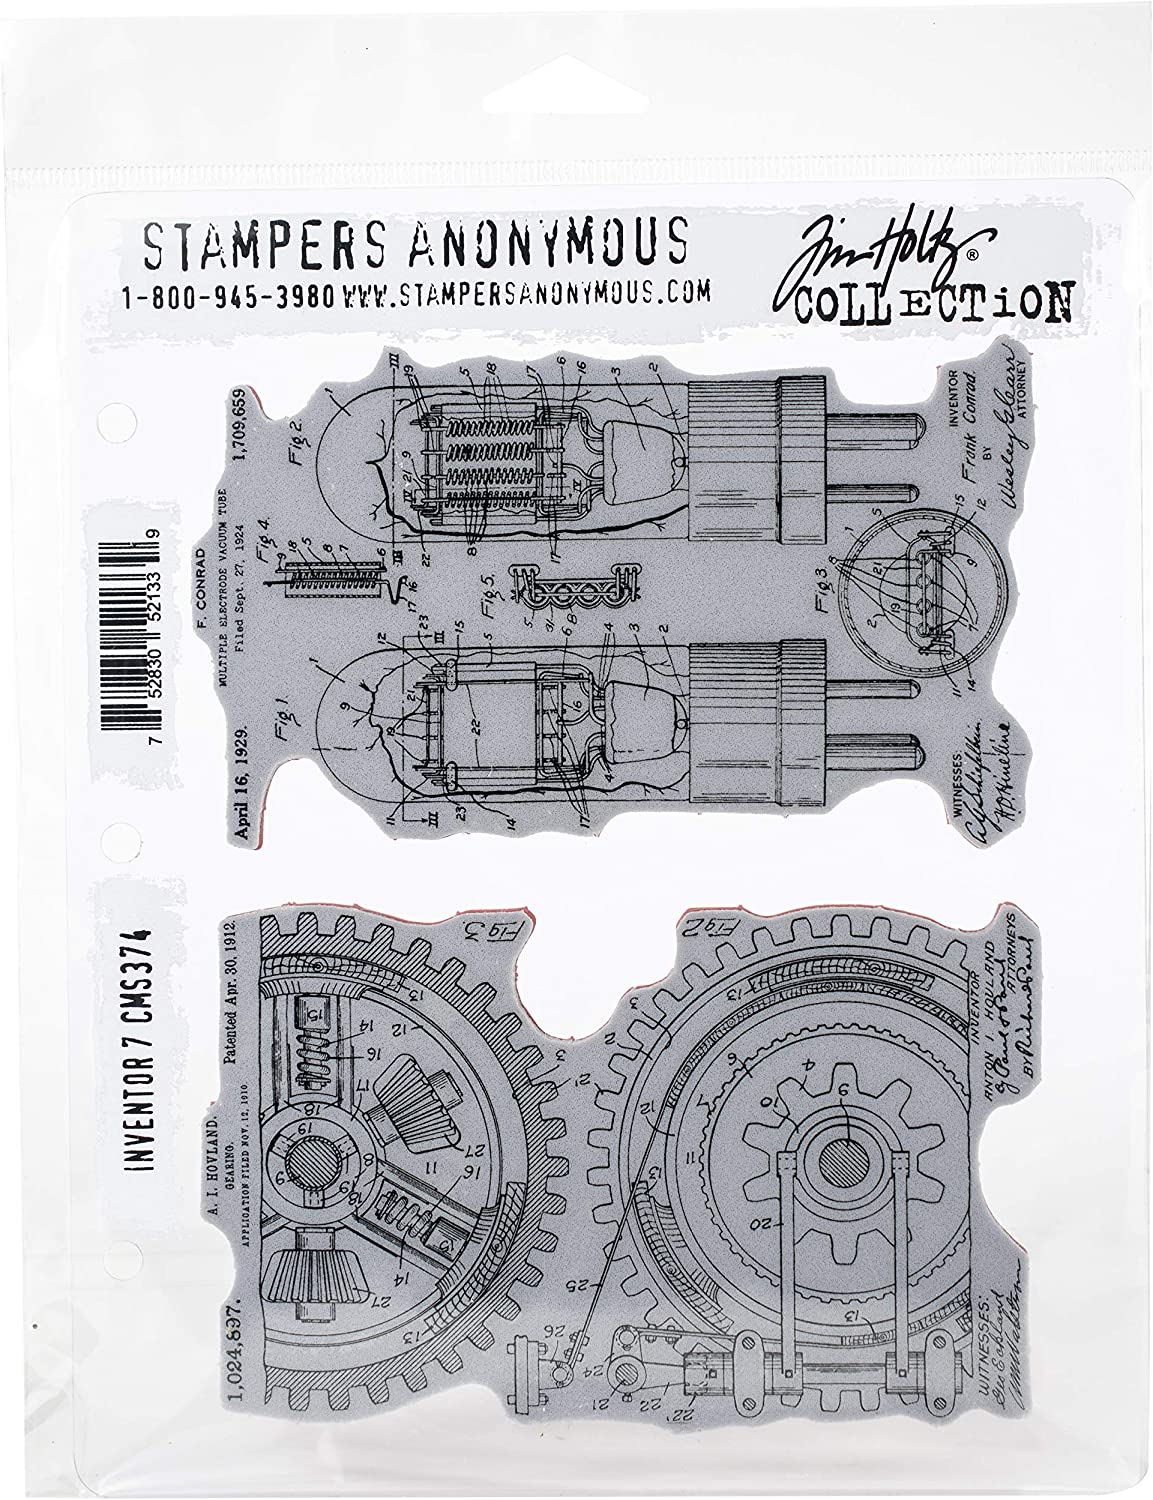 Stampers Anonymous SPACMS.374 ClngStp THoltz Inventor #7